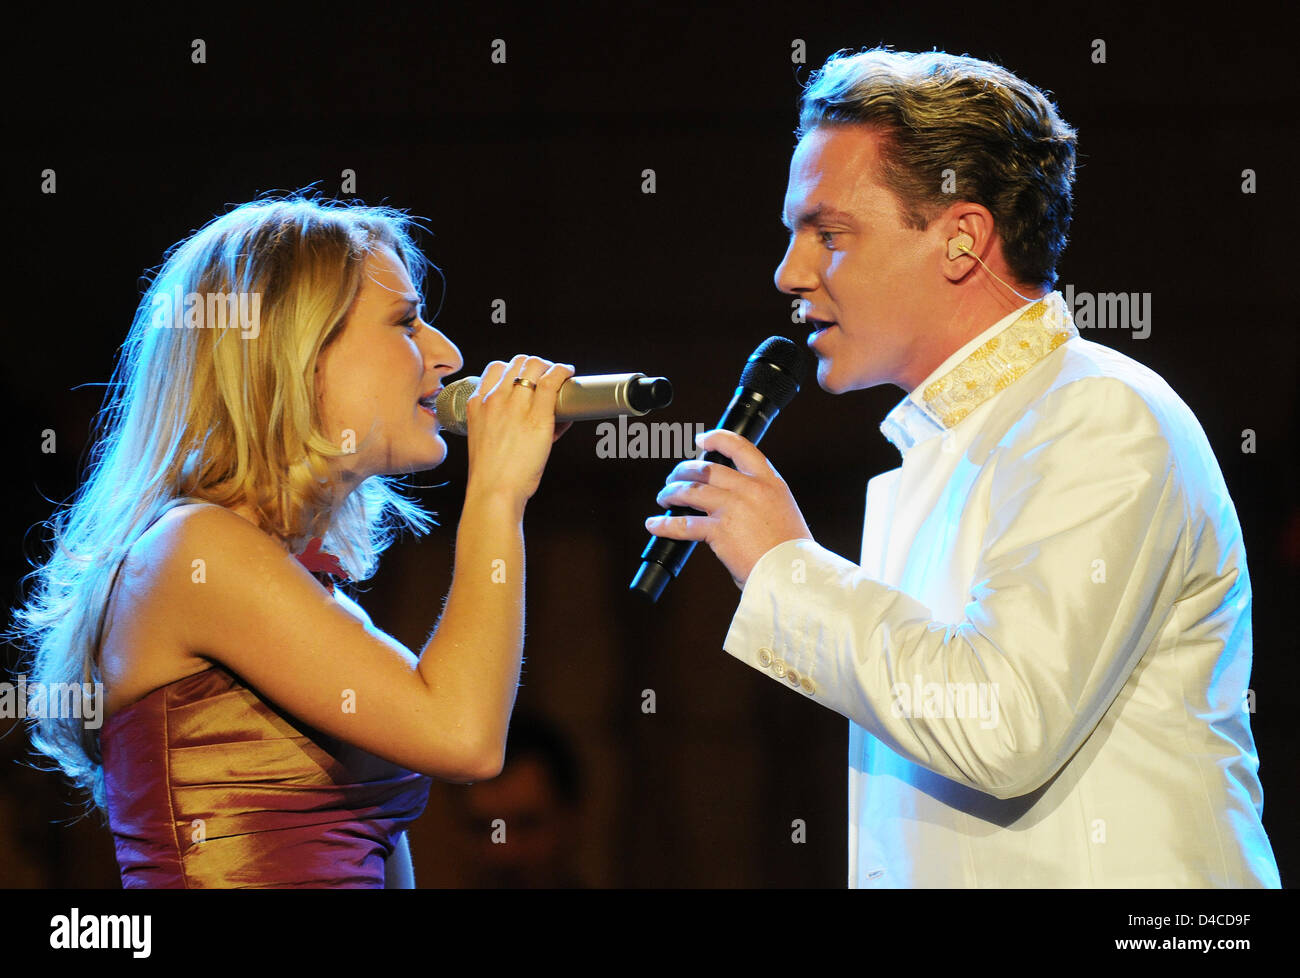 Folksy music singers Stefan Mross and his wife Stefanie Hertel perform on stage at folksy music TV show 'Musikantenstadl' - Stock Image